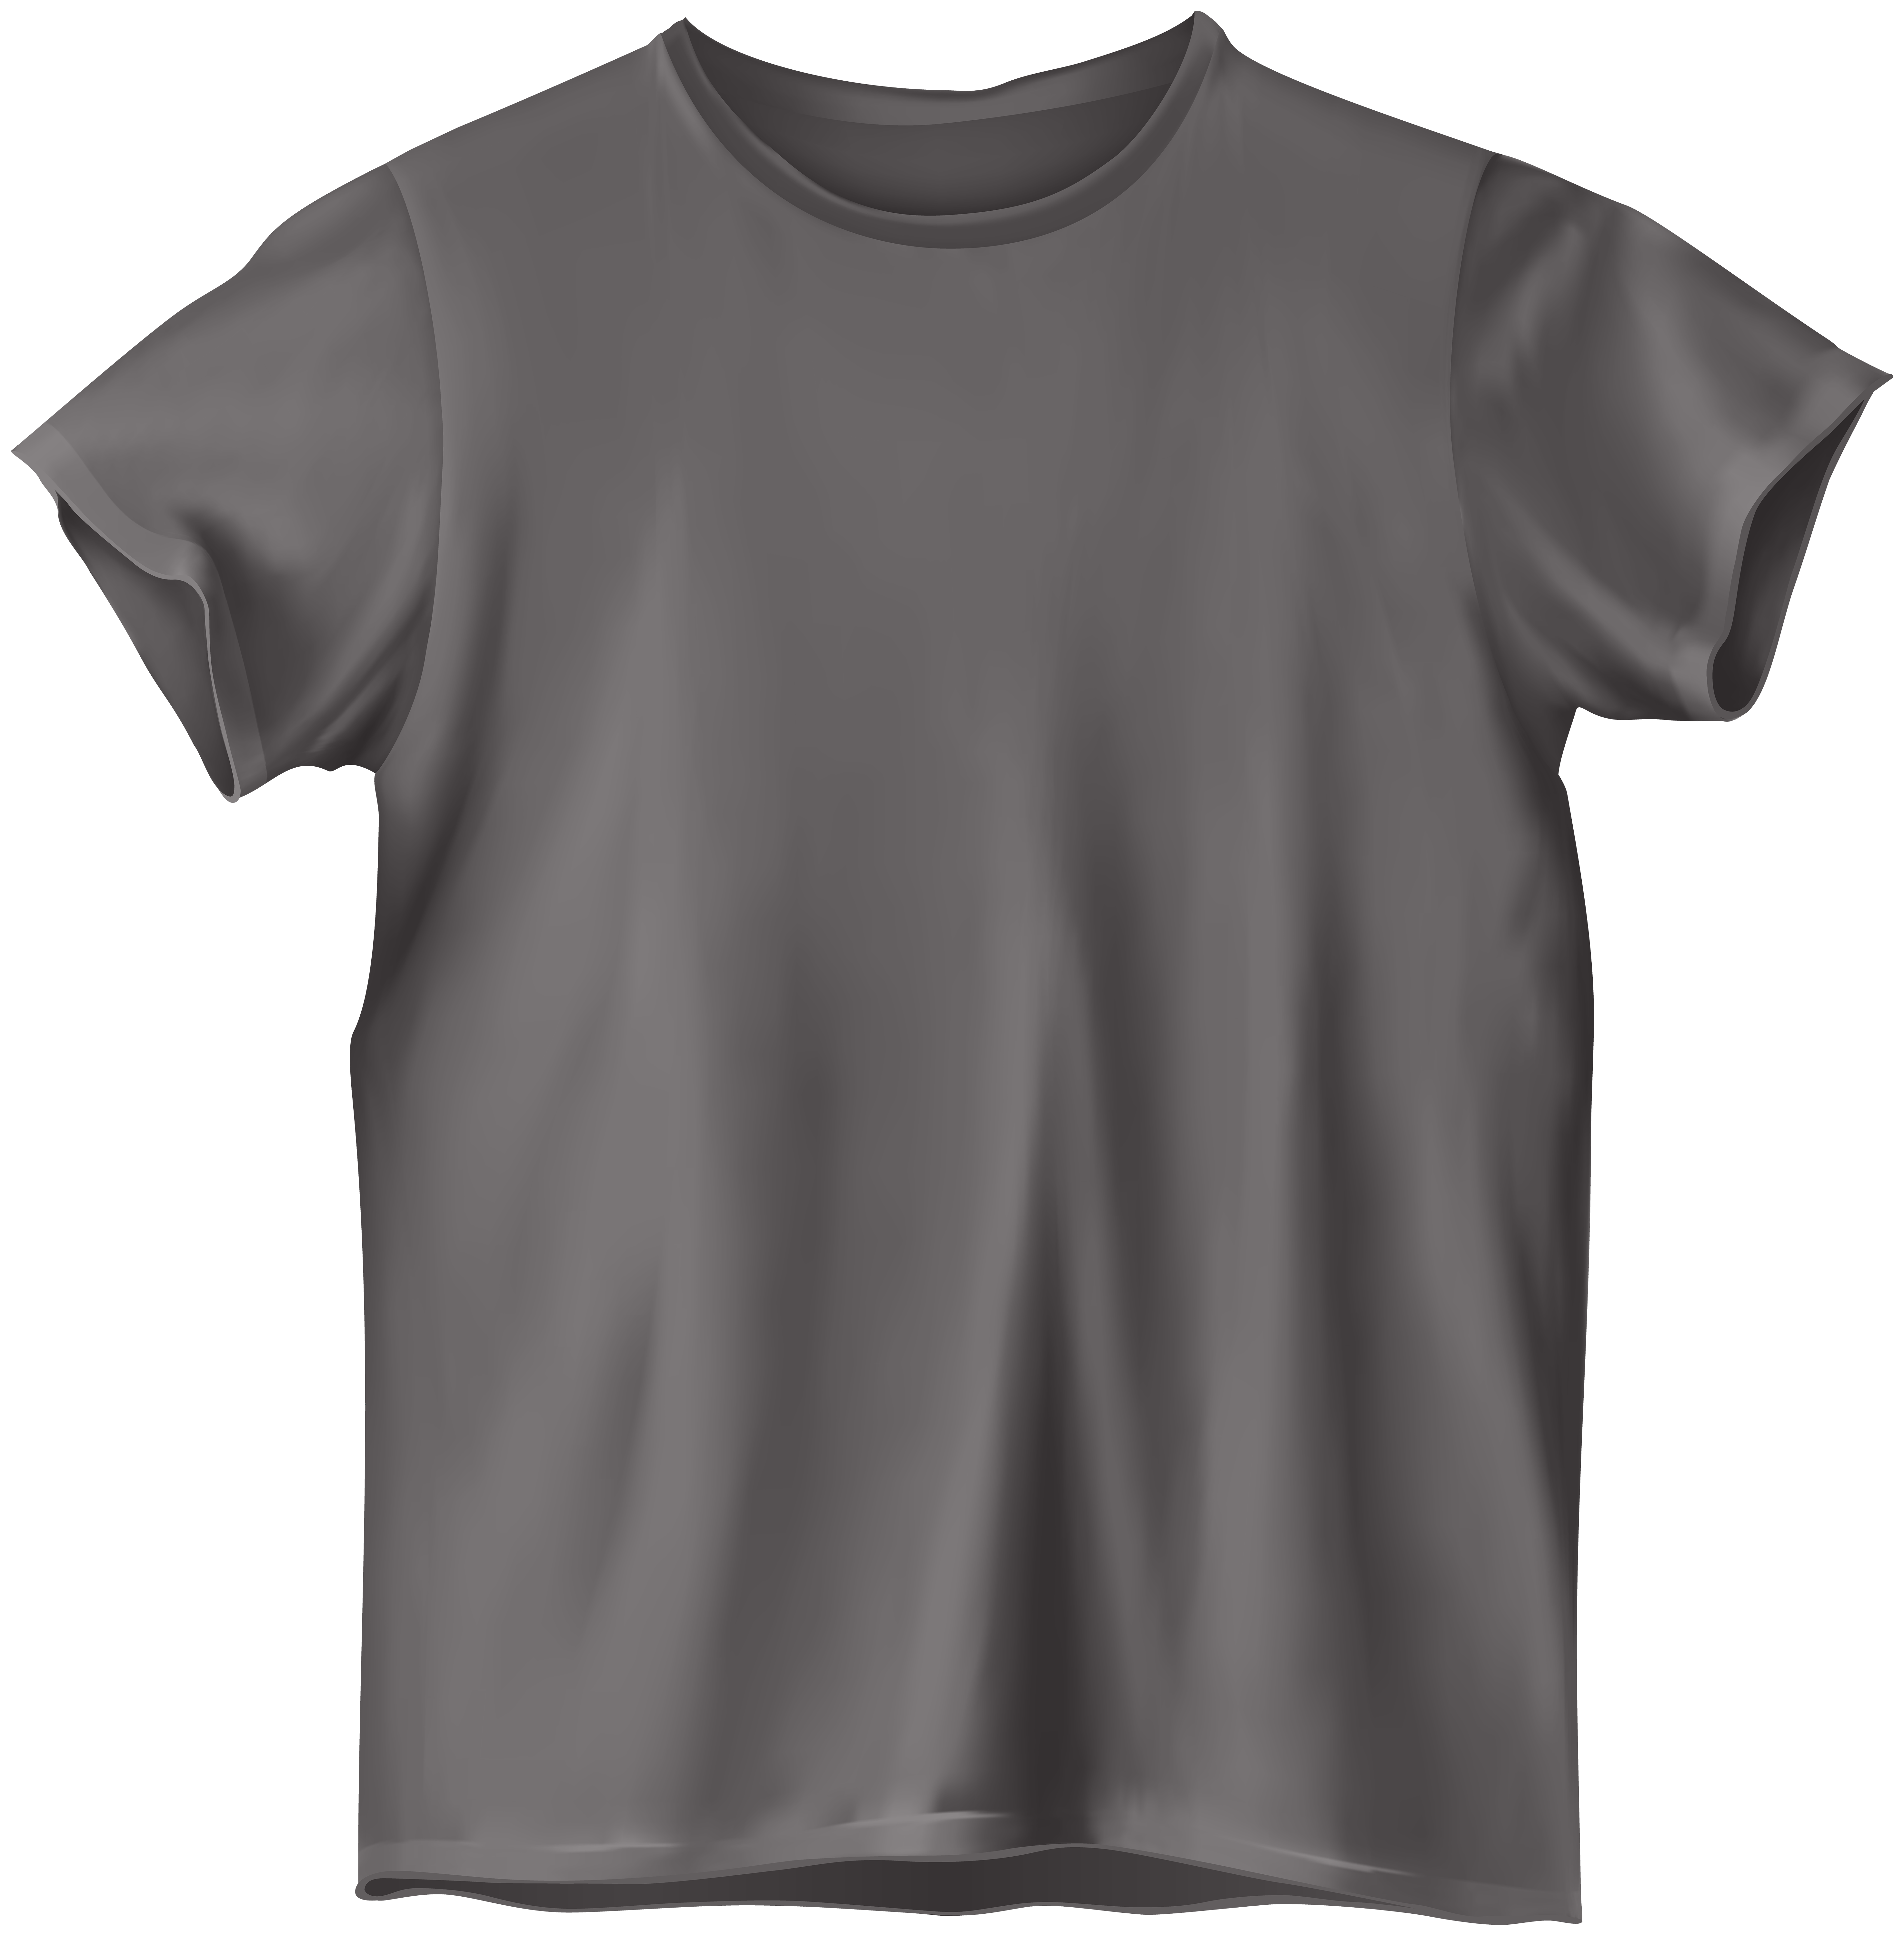 Grey t shirt png. Clipart road top view